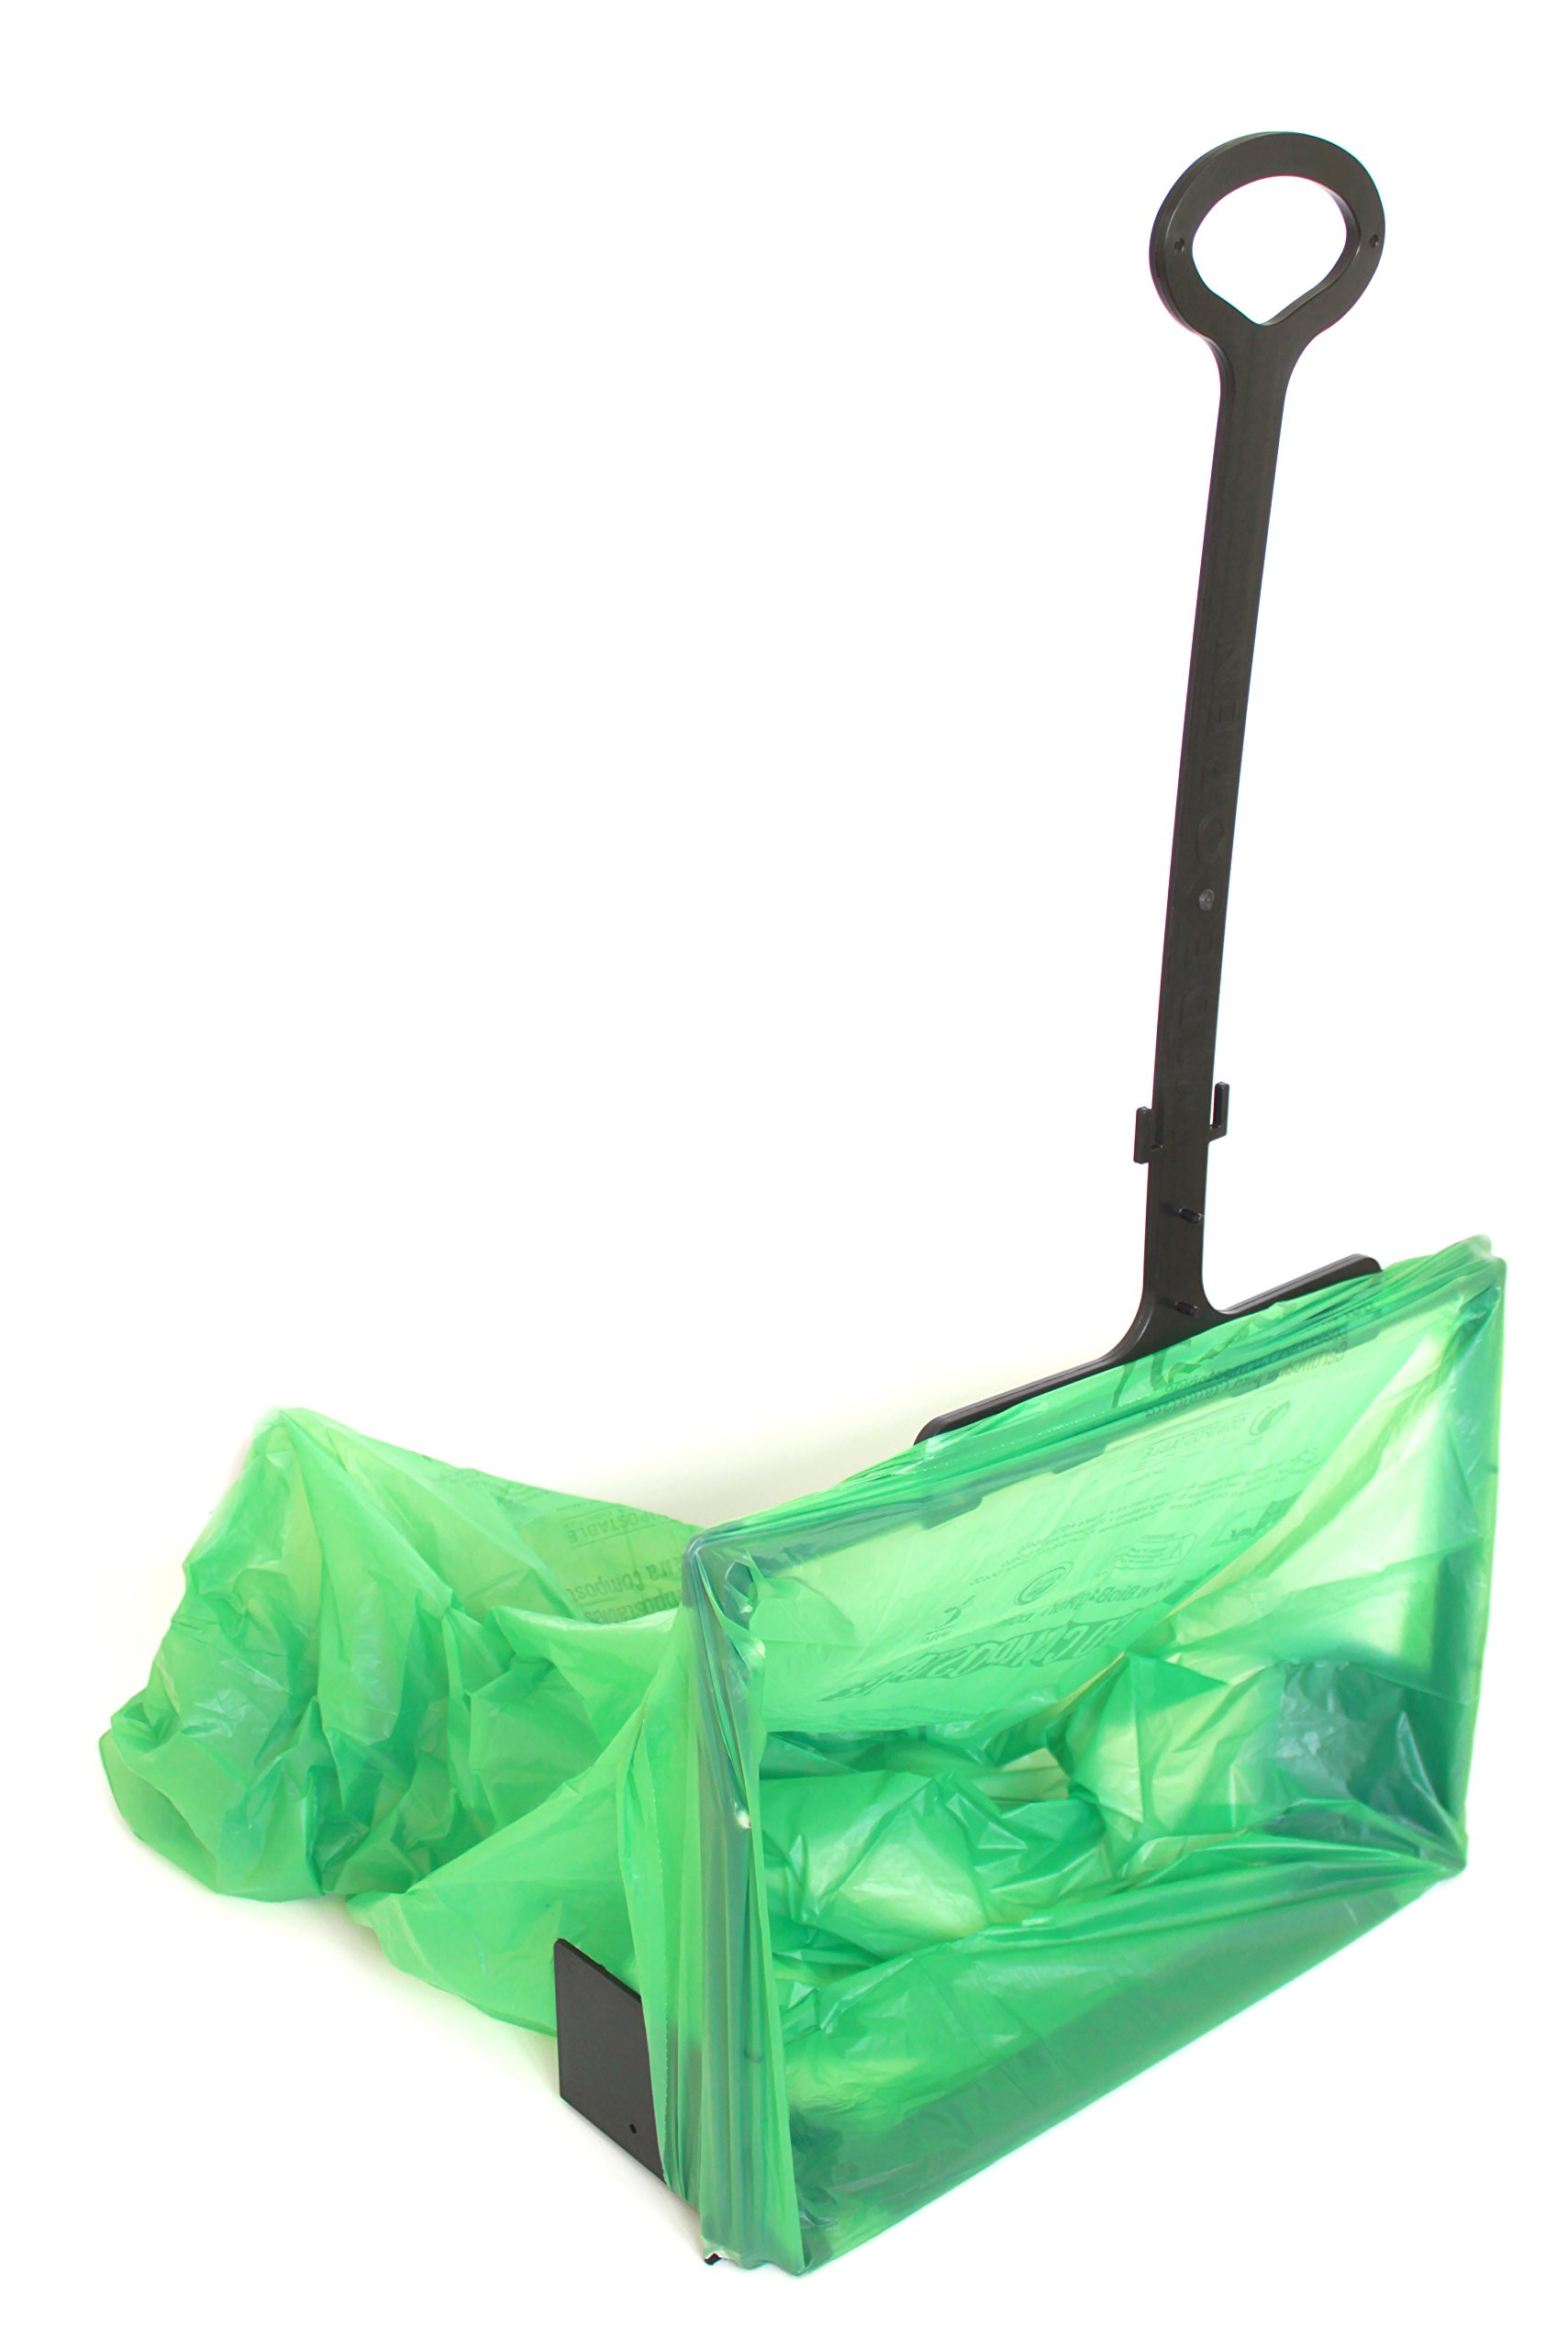 WideOpen's Big-Bagger let's you Rake, Sweep, Shovel, and more into an Open Plastic Trash Bag for Easy Cleanup